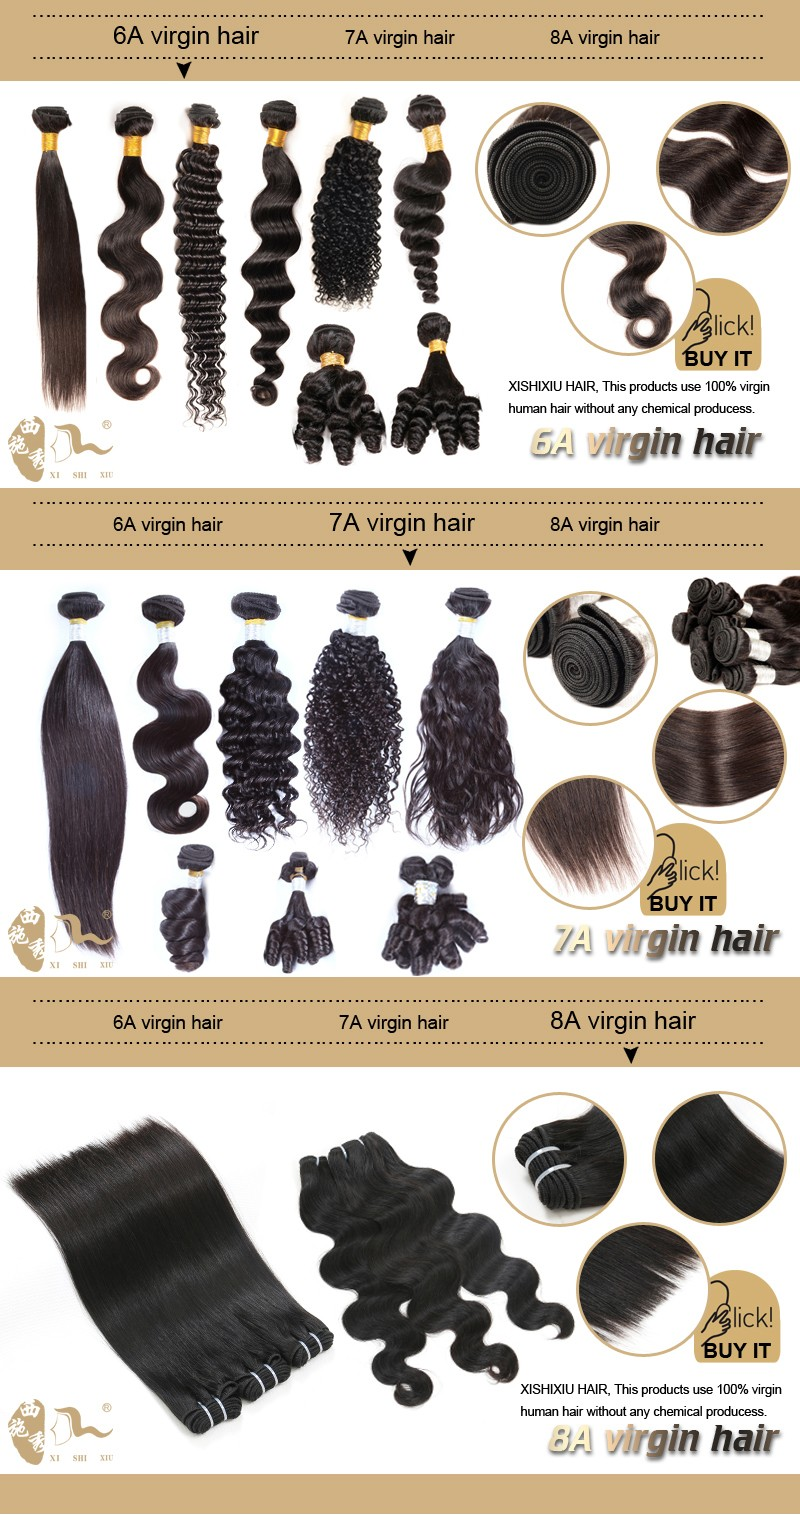 www.alibaba.com wholes cheap virgin hair brazilian human hair sew in weave bundles